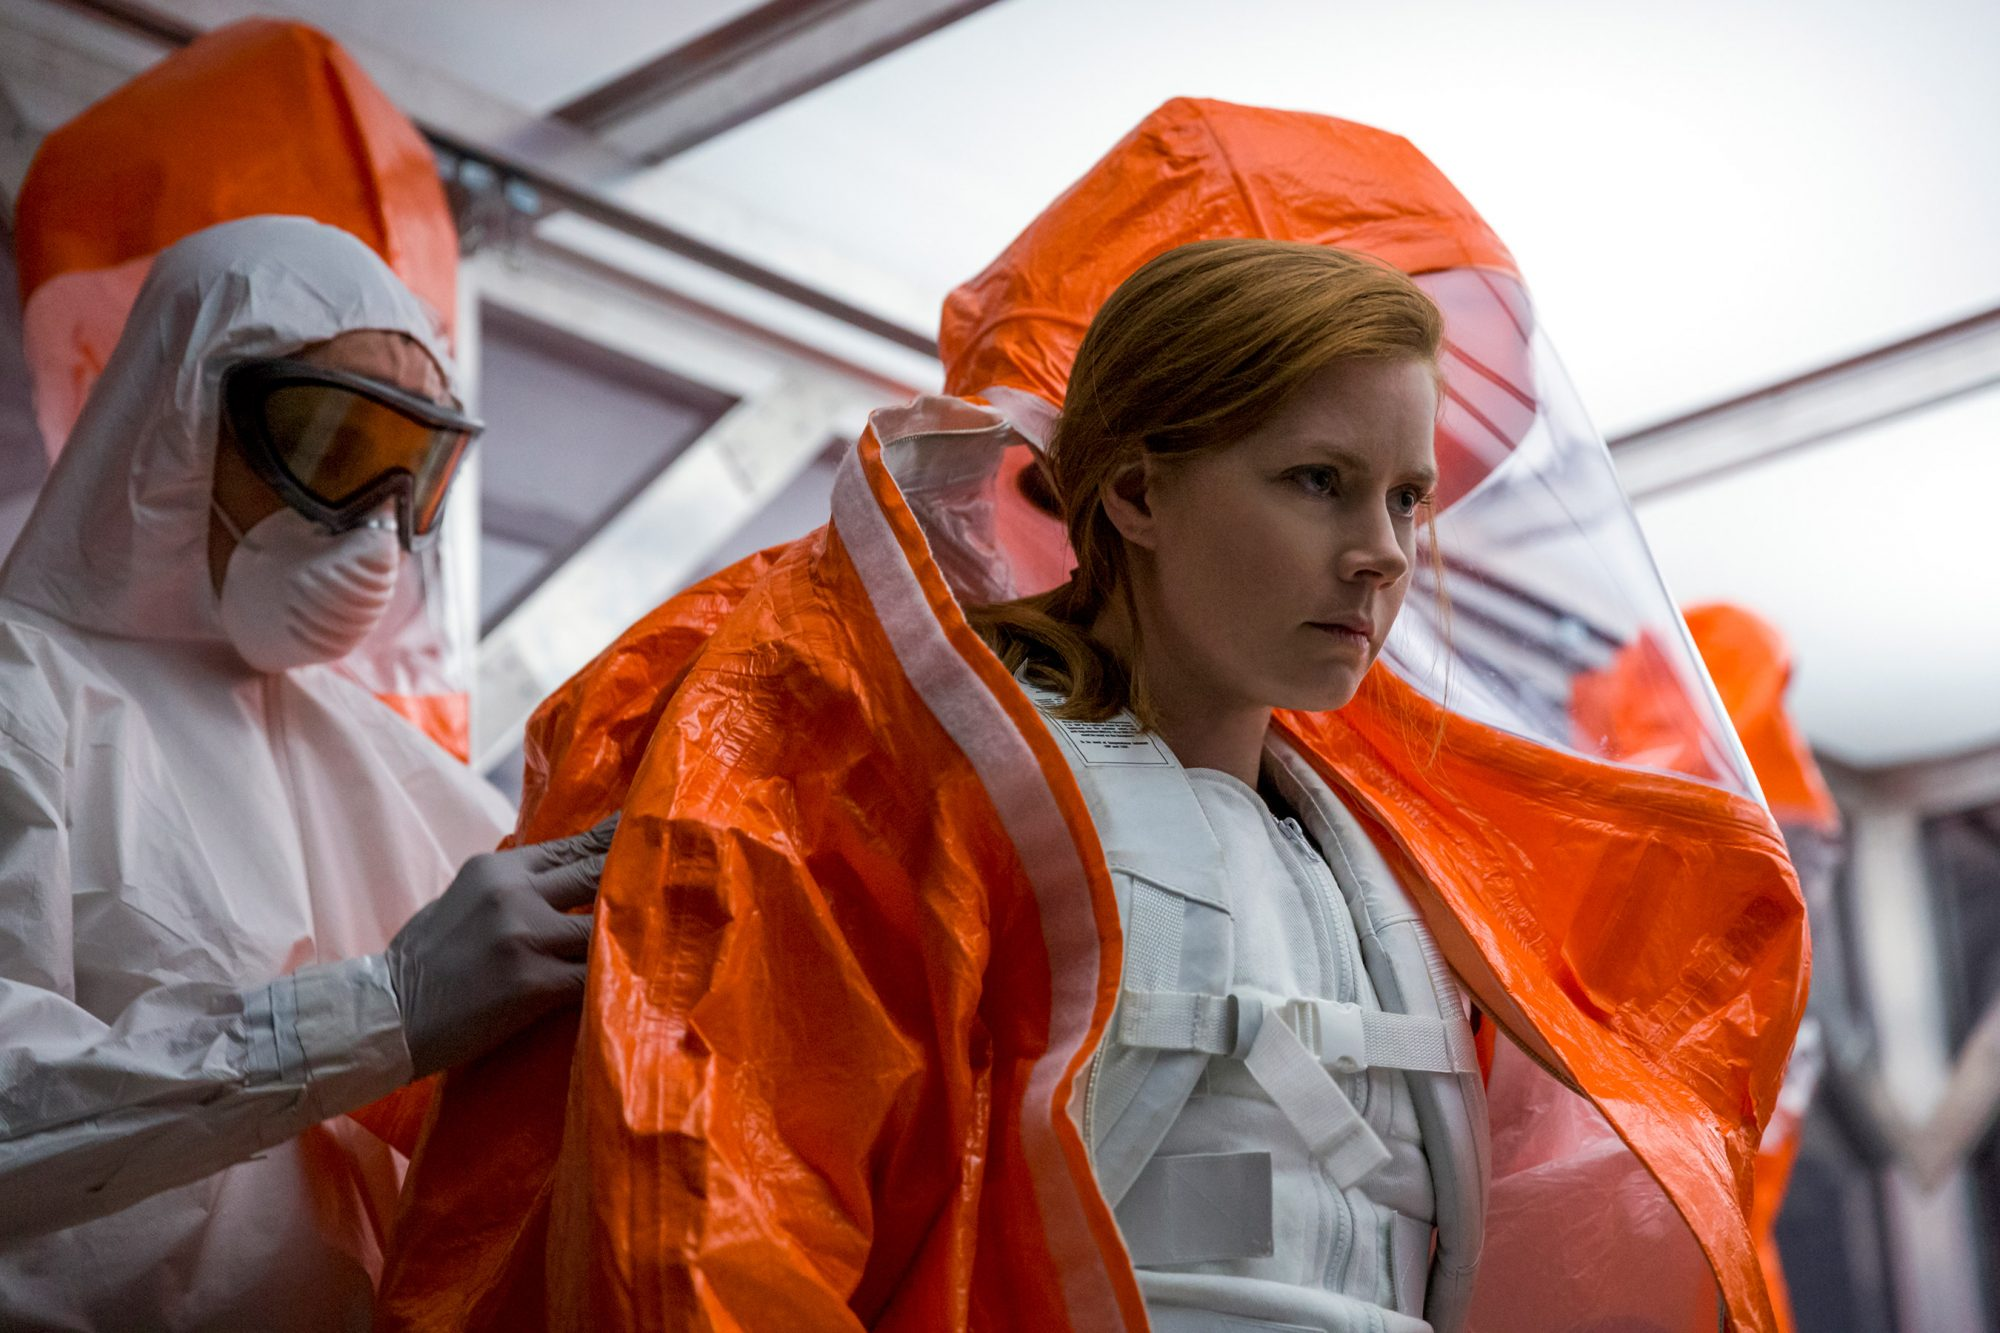 Oscar Nominee Arrival for directing